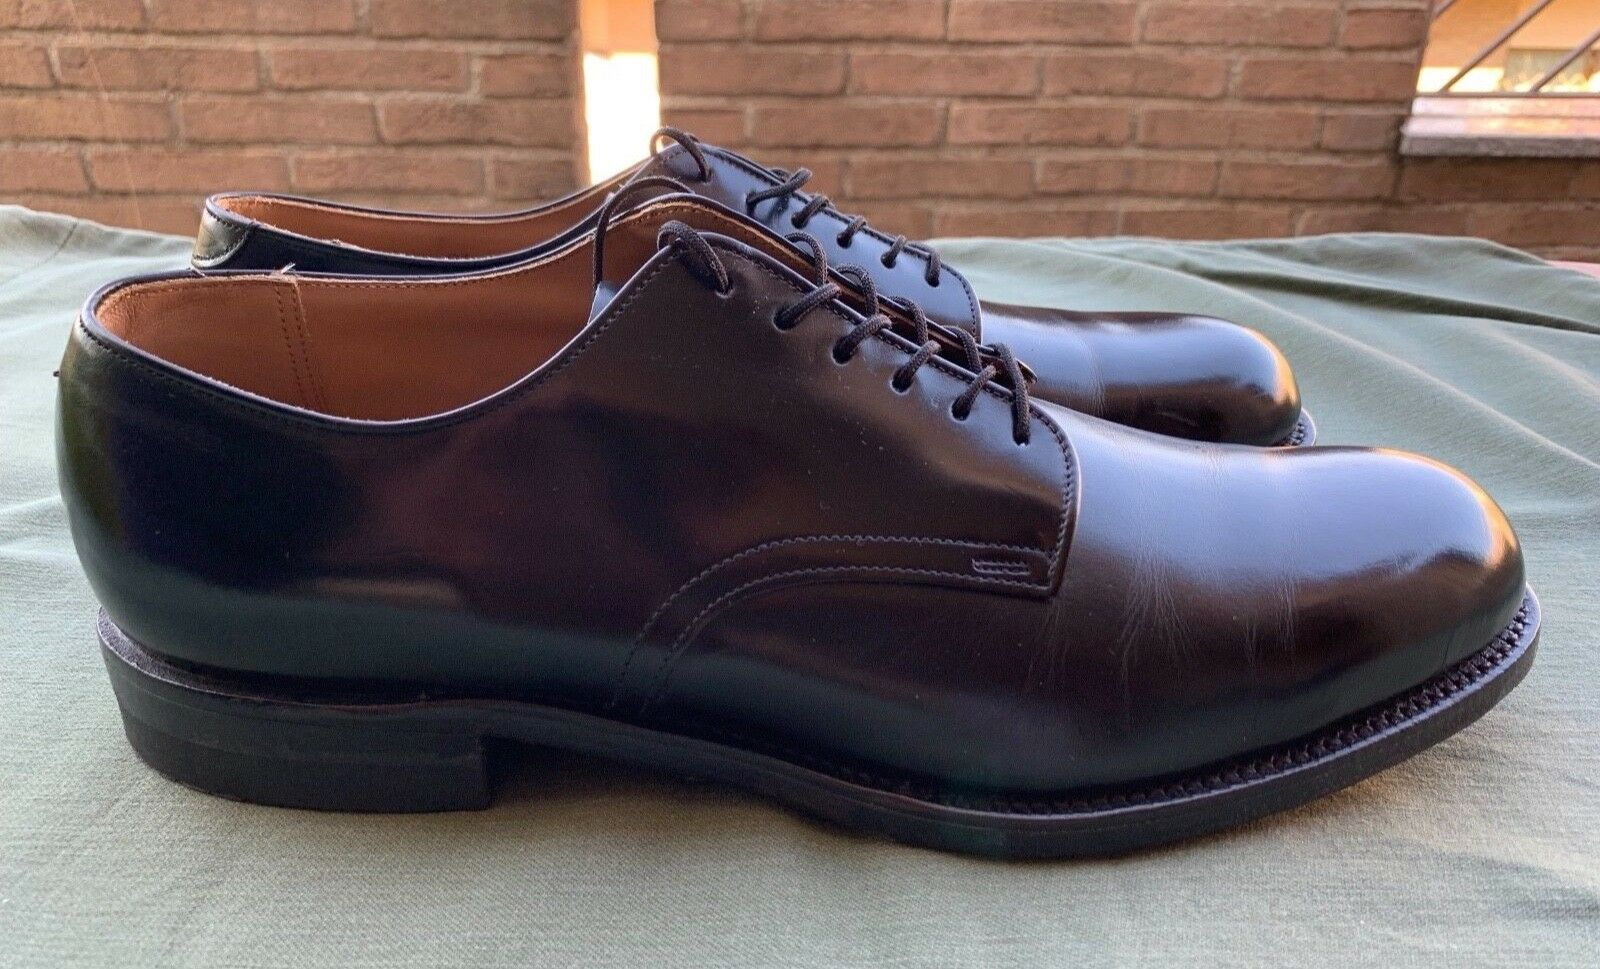 NAVY 1970 Military Service Oxford Shoes Pelle Sz. 11.5 N - D.J. Leavenworth